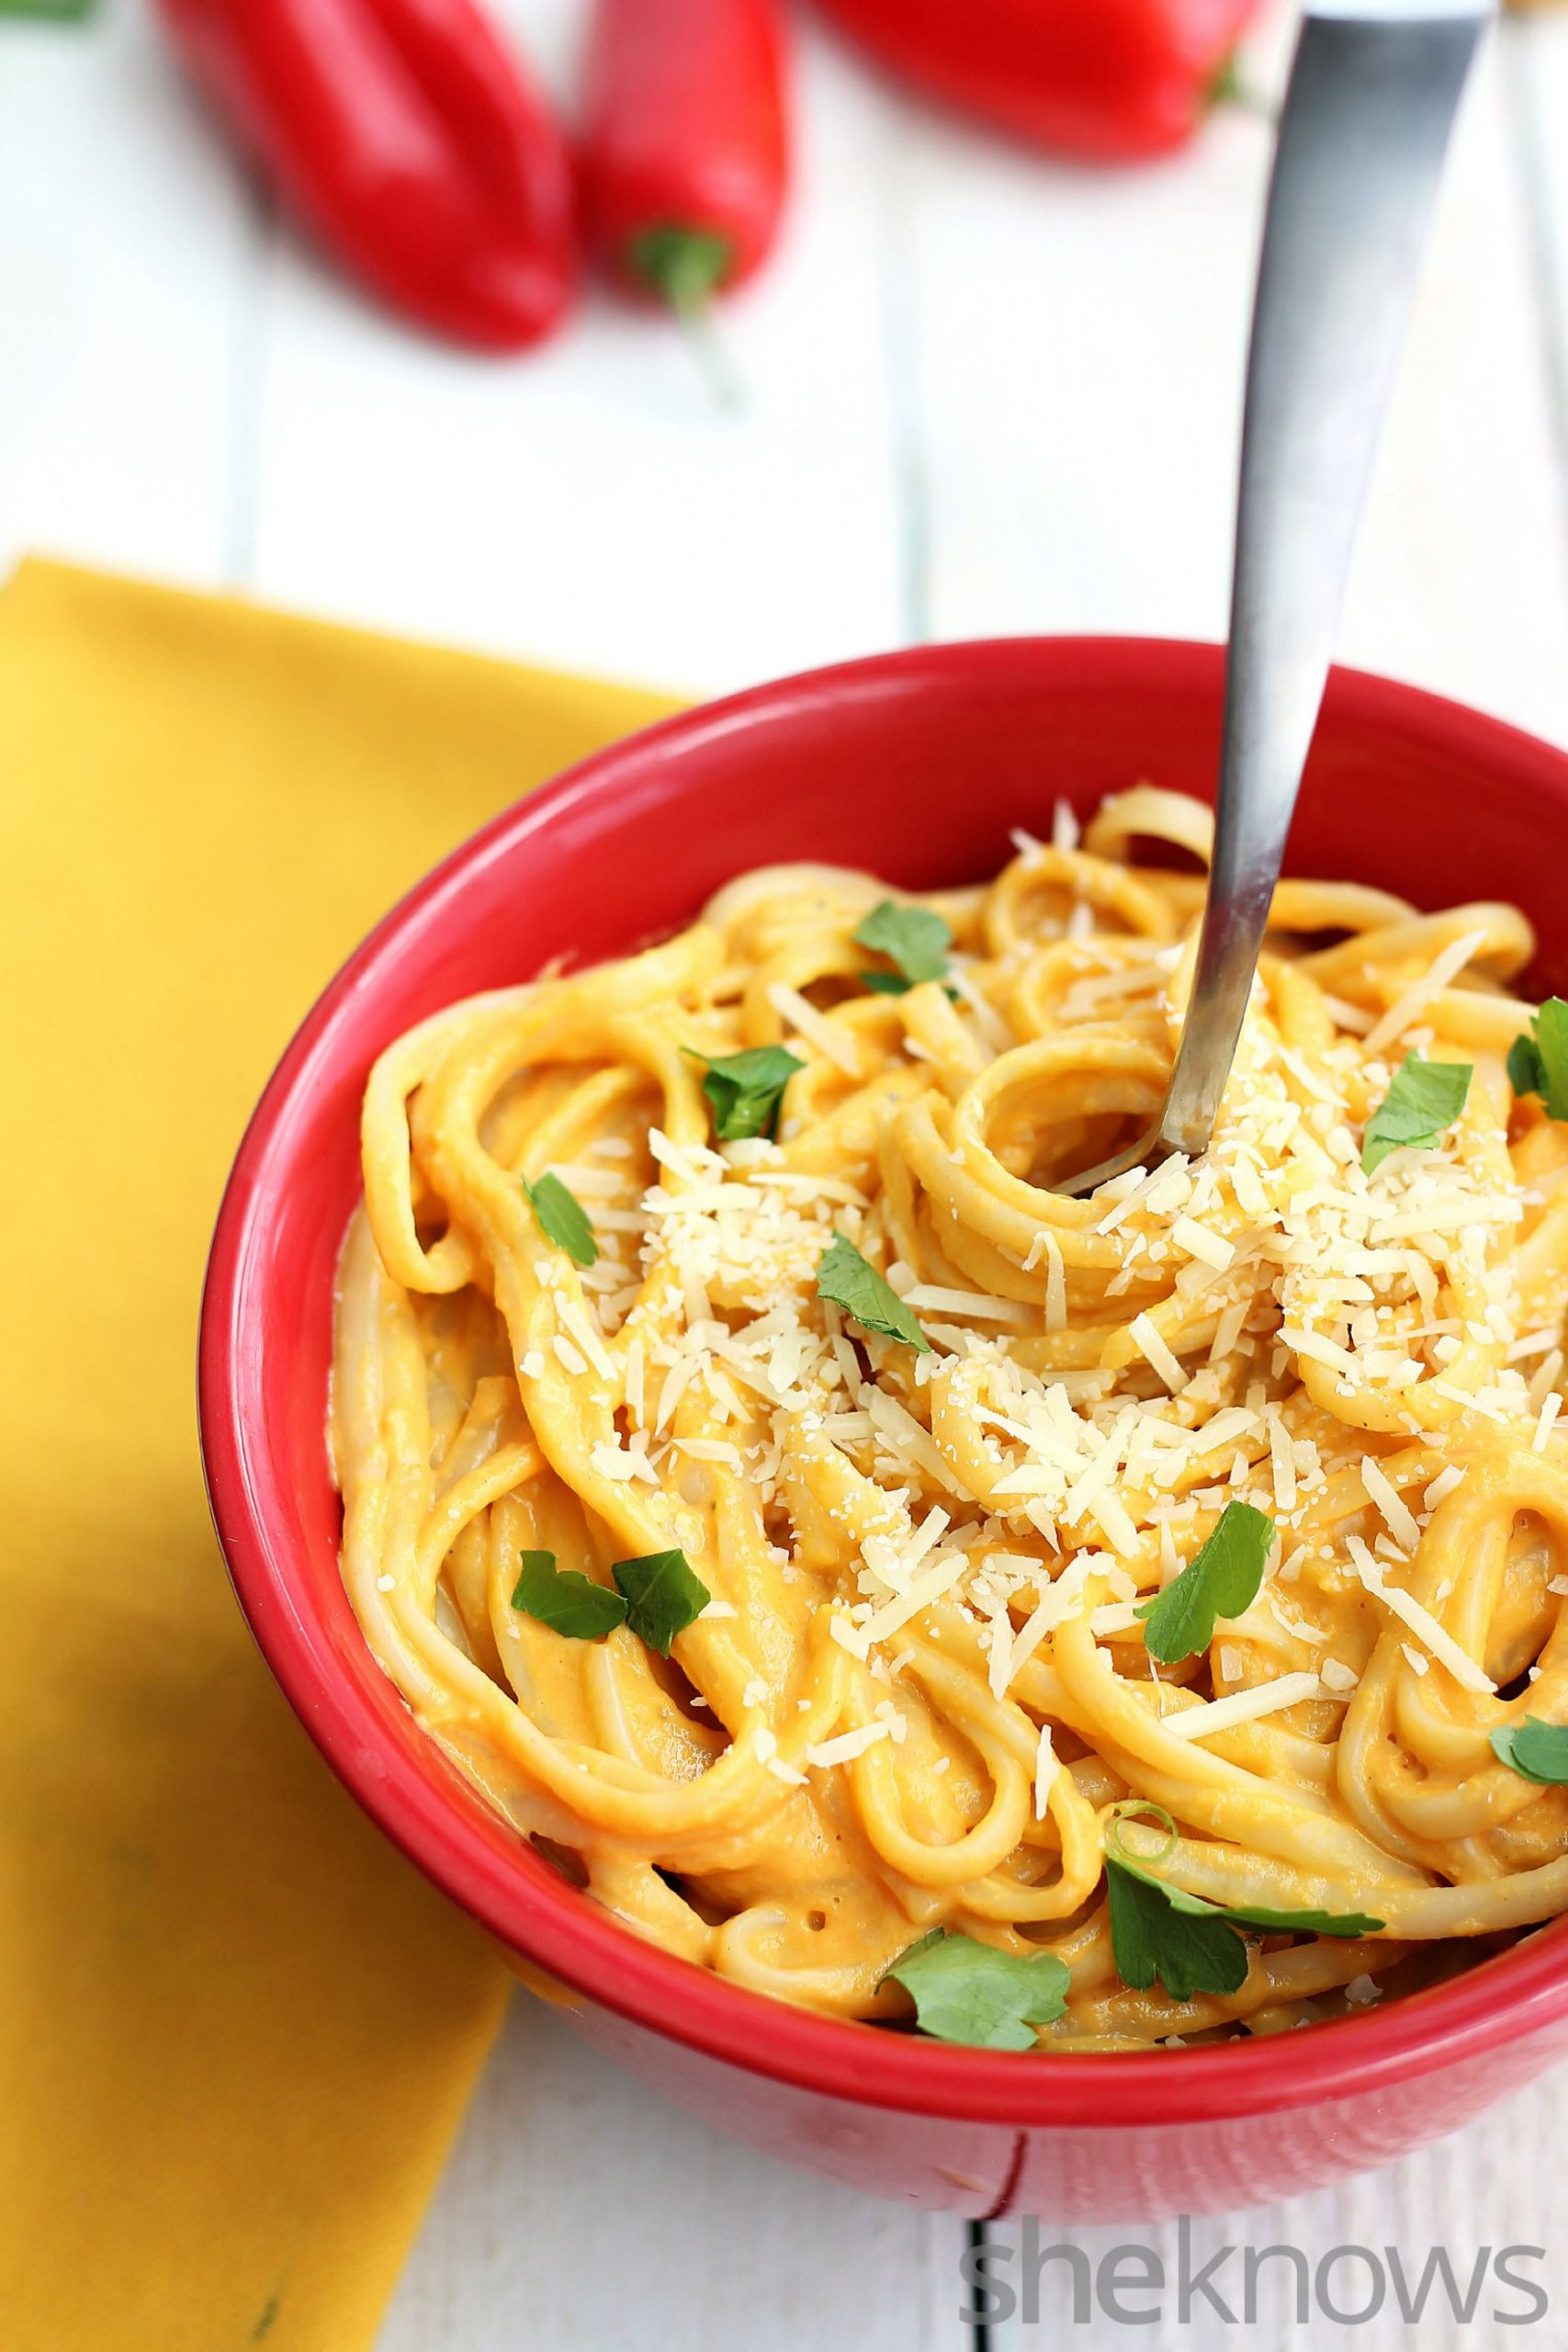 11 Easy-to-Make Pasta Recipes to Bring to Work – SheKnows